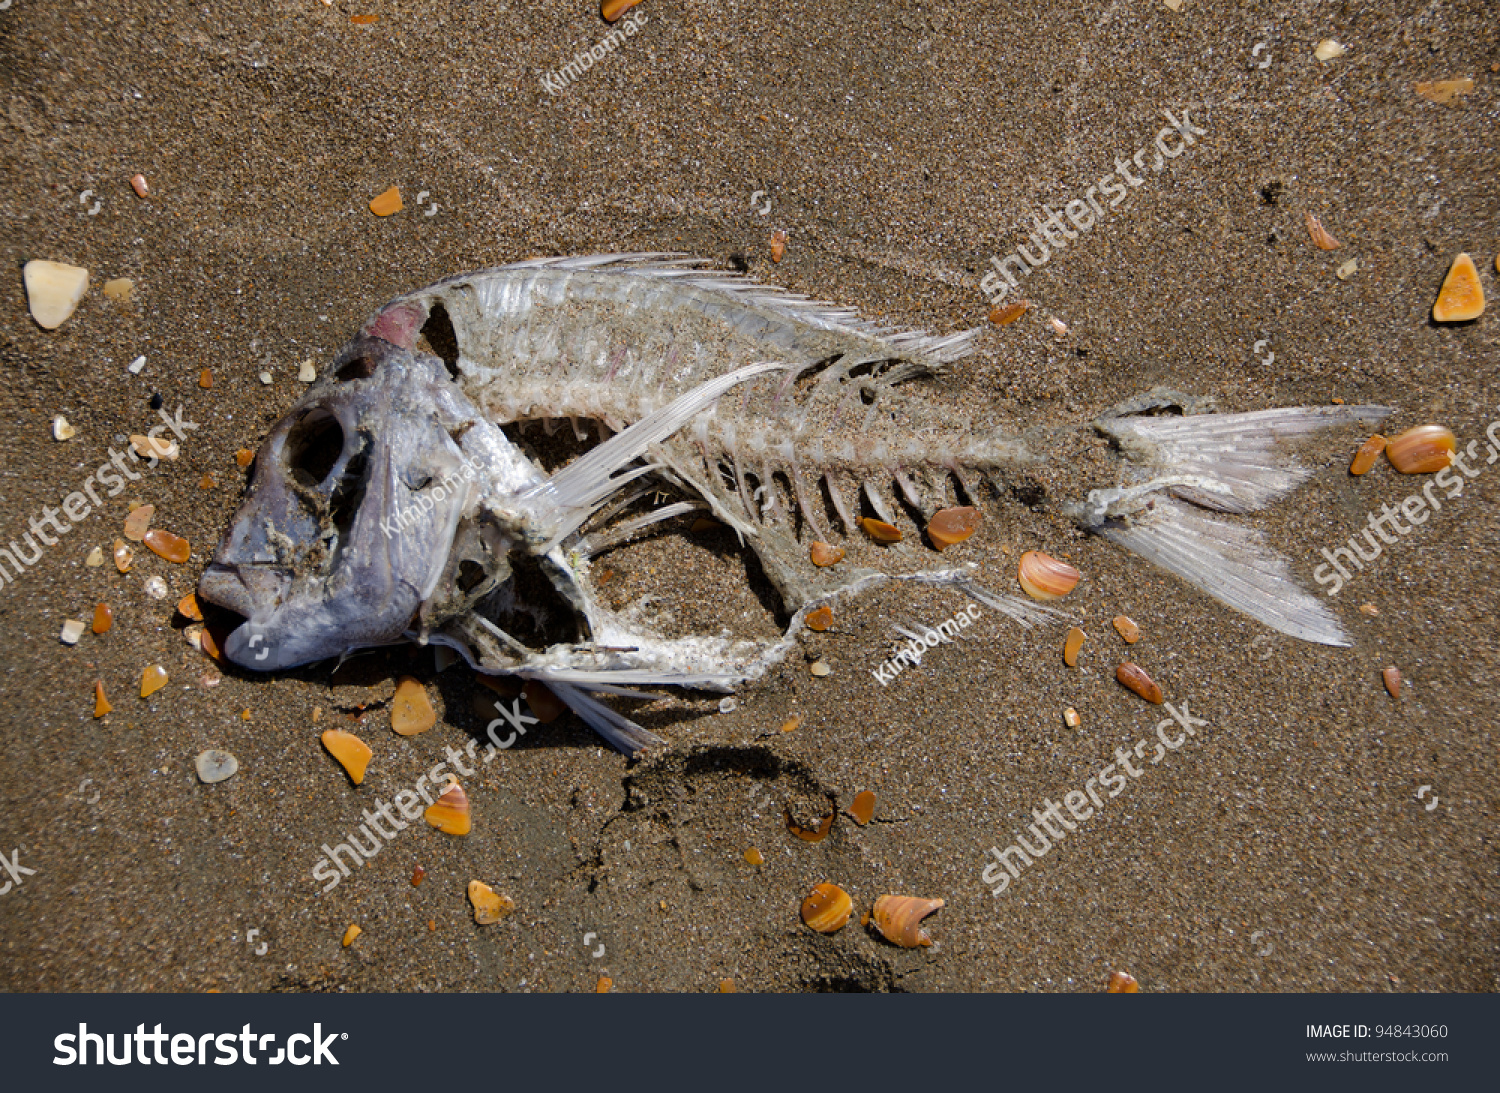 Skeleton of a dead fish on smooth wet beach sand stock for Is a fish wet